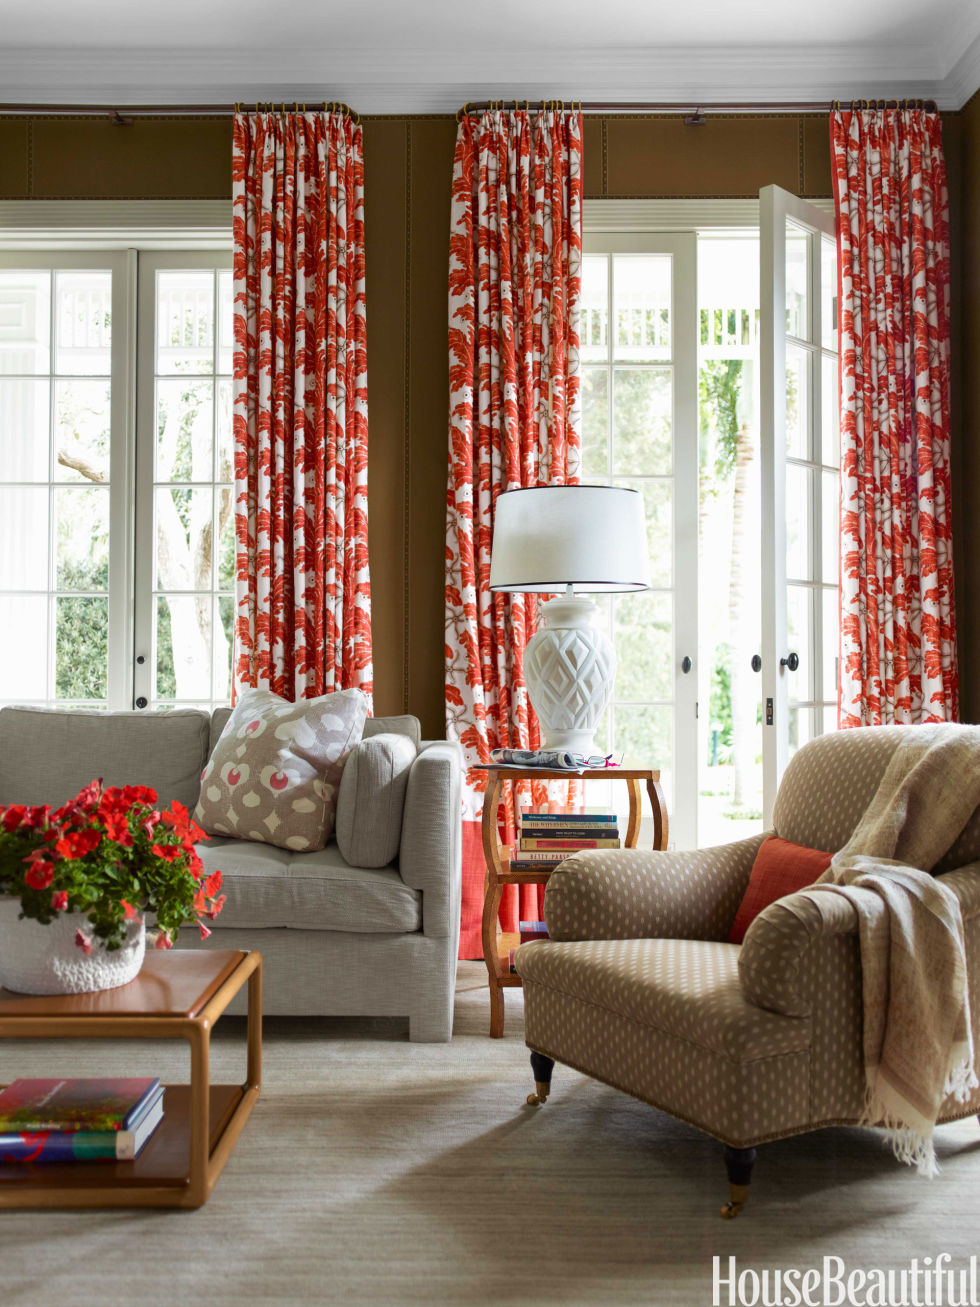 50 Modern Window Treatment Ideas - Best Curtains and Window Coverings